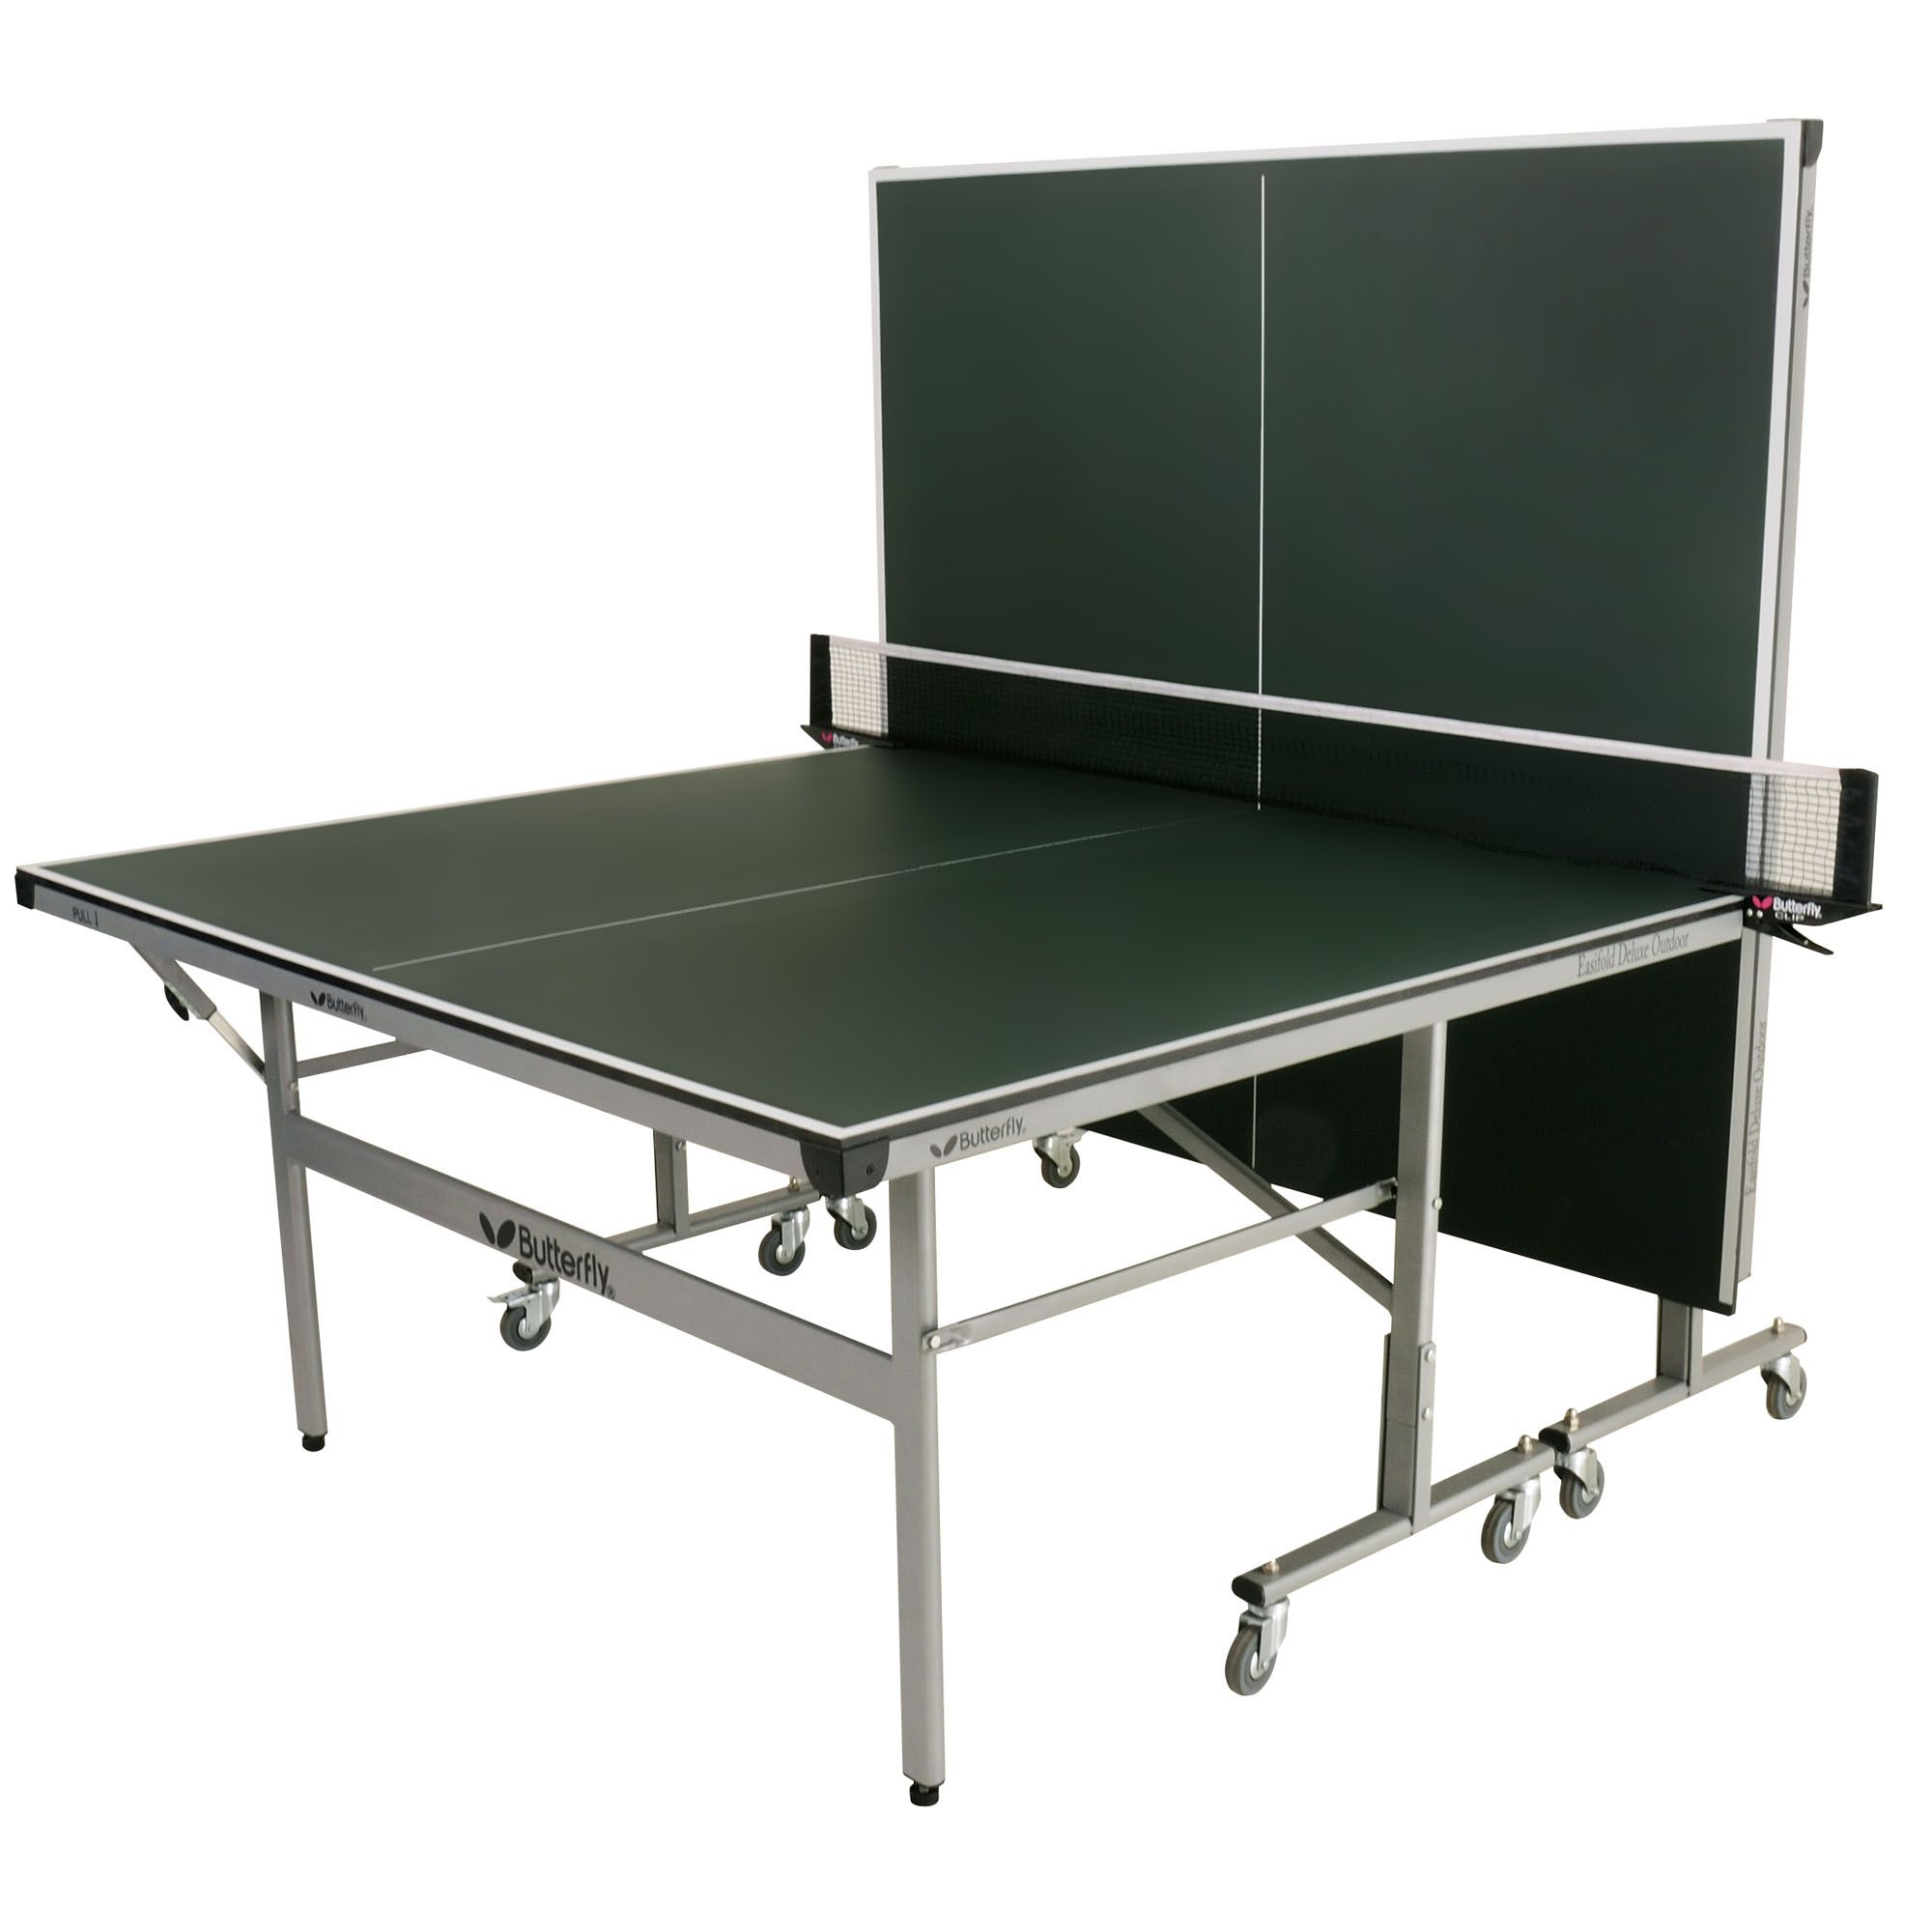 Butterfly easifold deluxe outdoor table tennis table - Weatherproof table tennis table ...